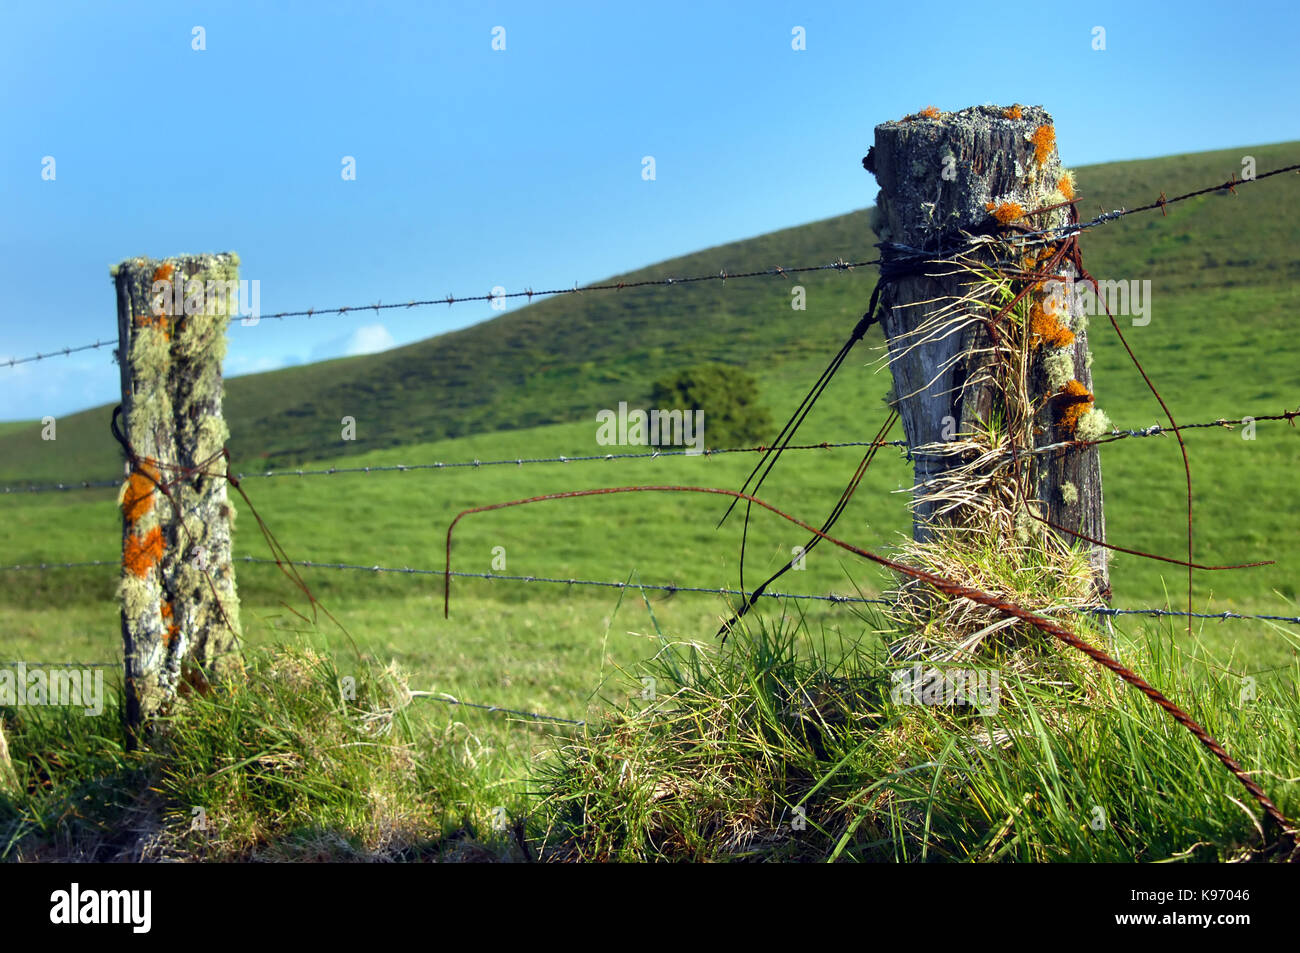 Upcountry fence on the Big Island of Hawaii is overgrown with lichen and mosses.  Barbed wire fences surround the Stock Photo